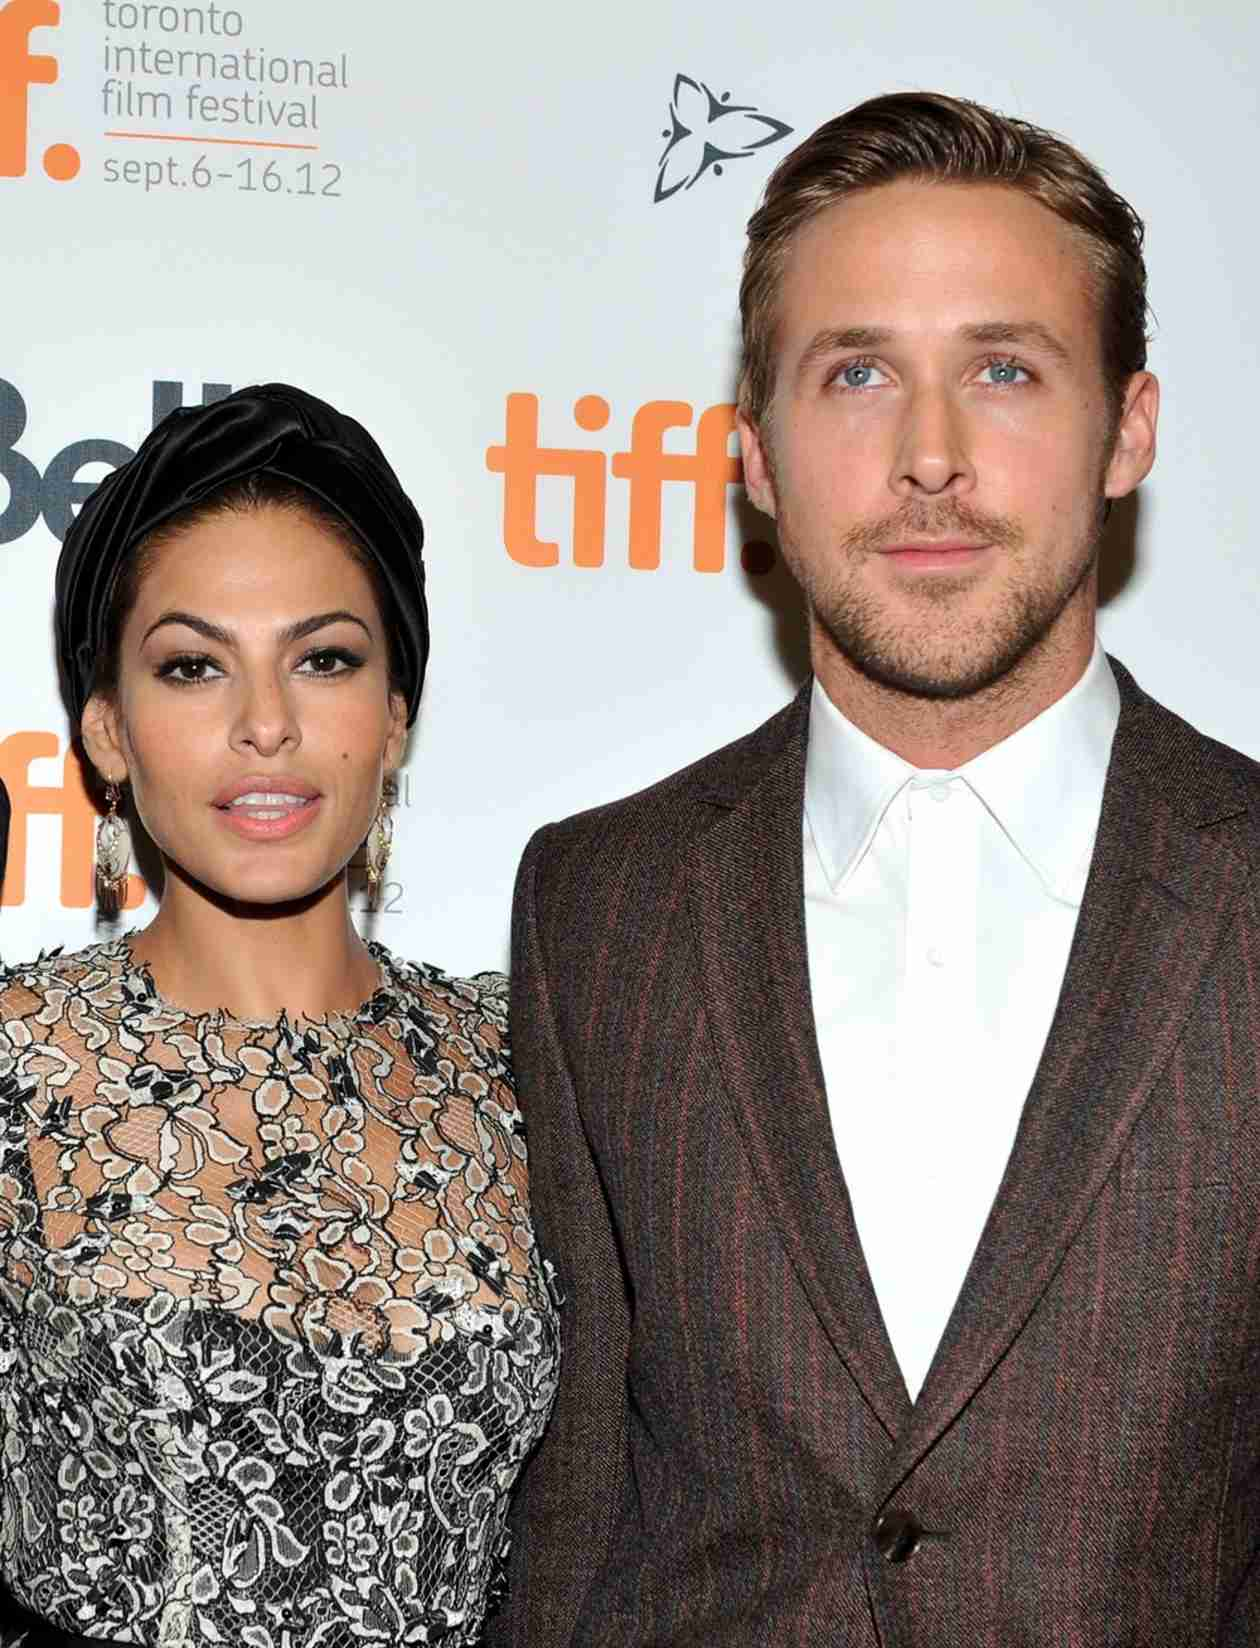 Ryan Gosling and Eva Mendes Will Marry After Baby Arrives — Report